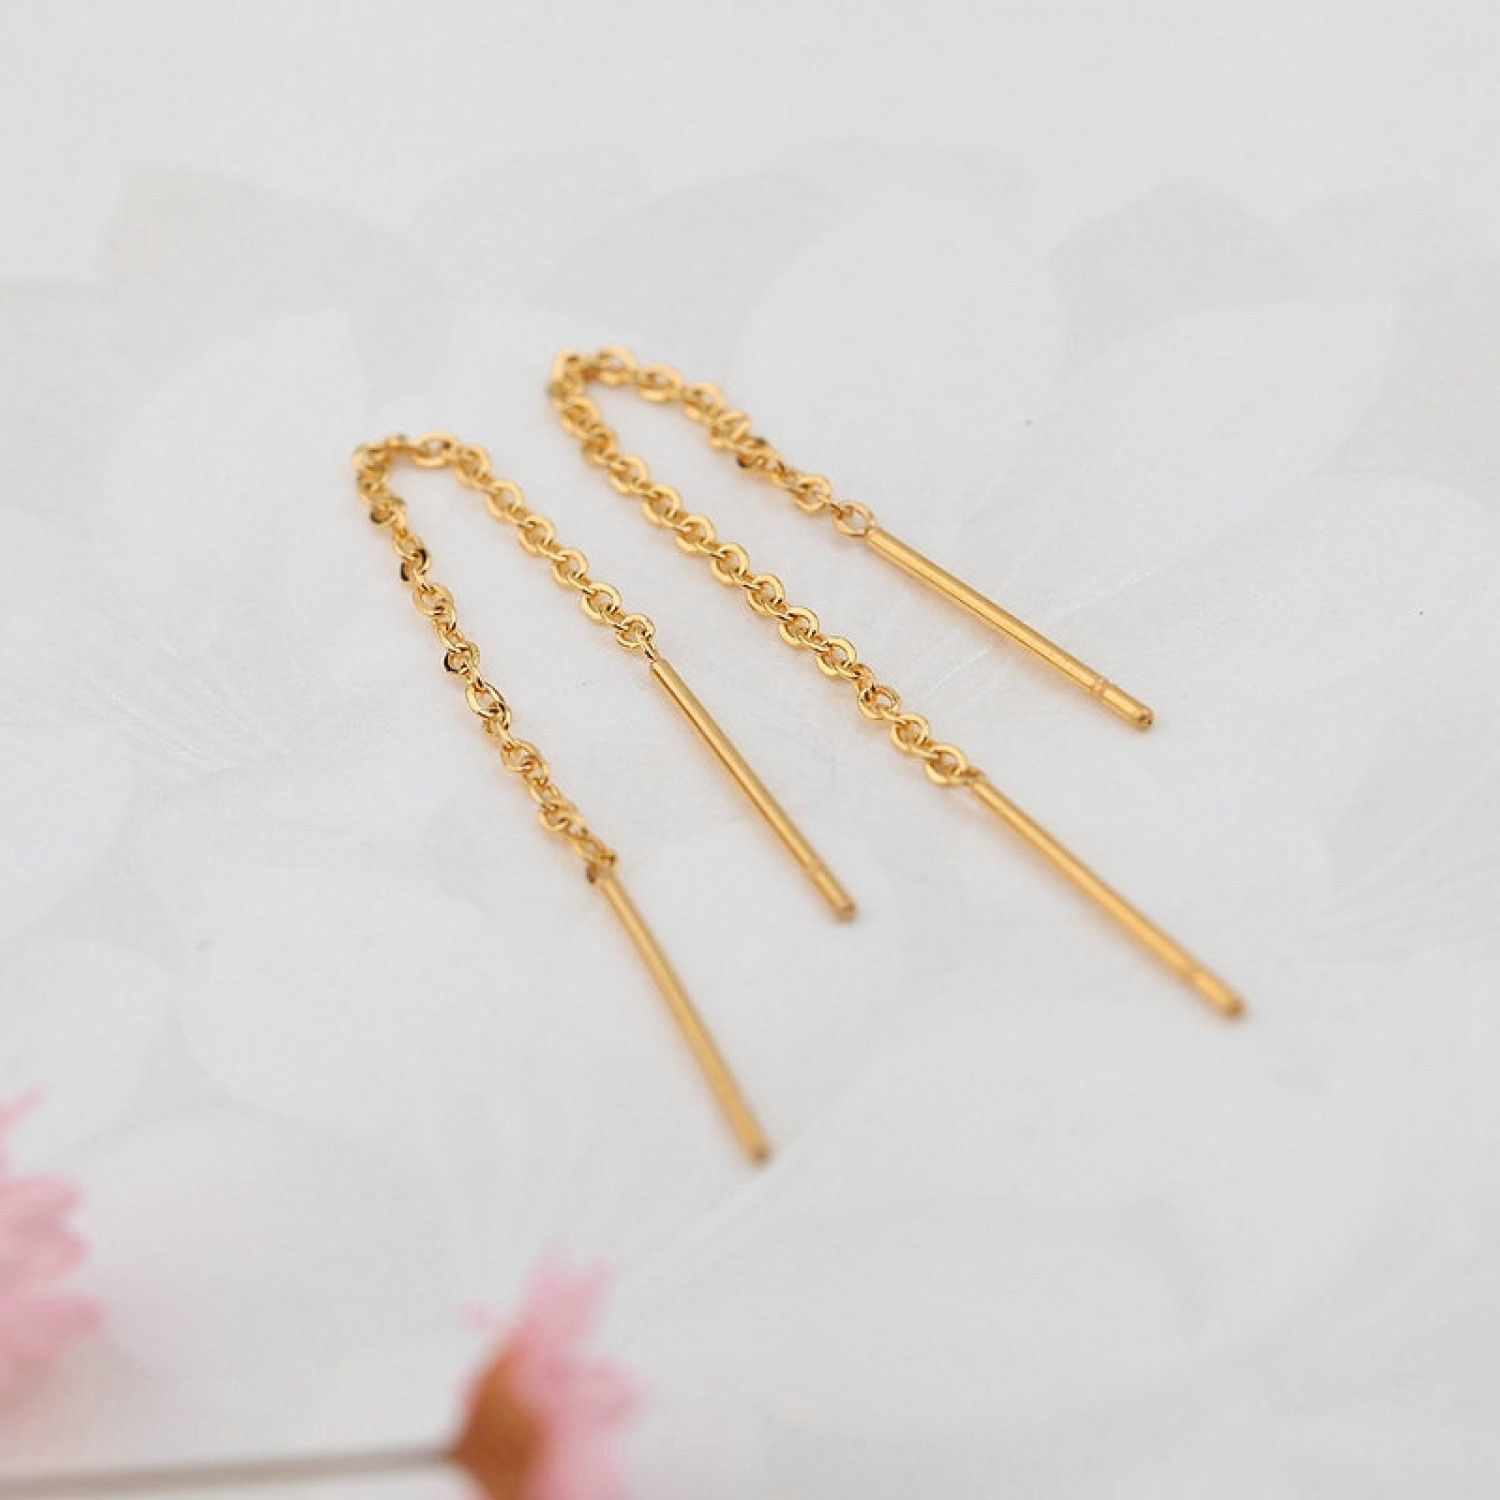 Drop Earrings Jewelry Top Quality Simple Spiral Ear Line Gold Color Fashion 2018